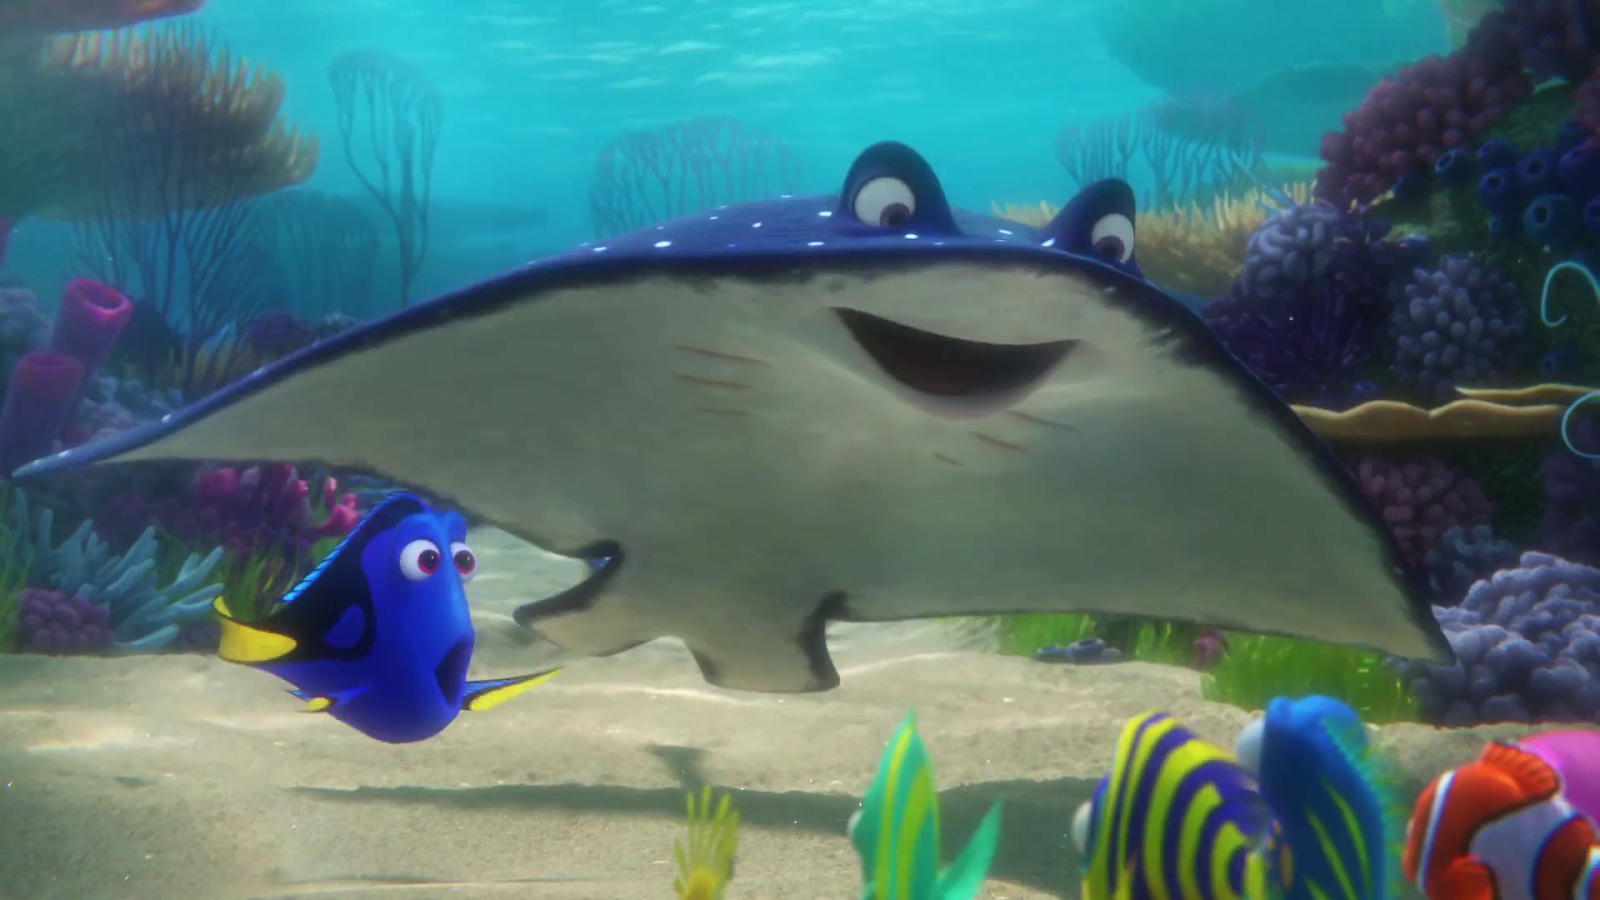 Finding Nemo Characters Mr Ray Pixar Post: Mar...